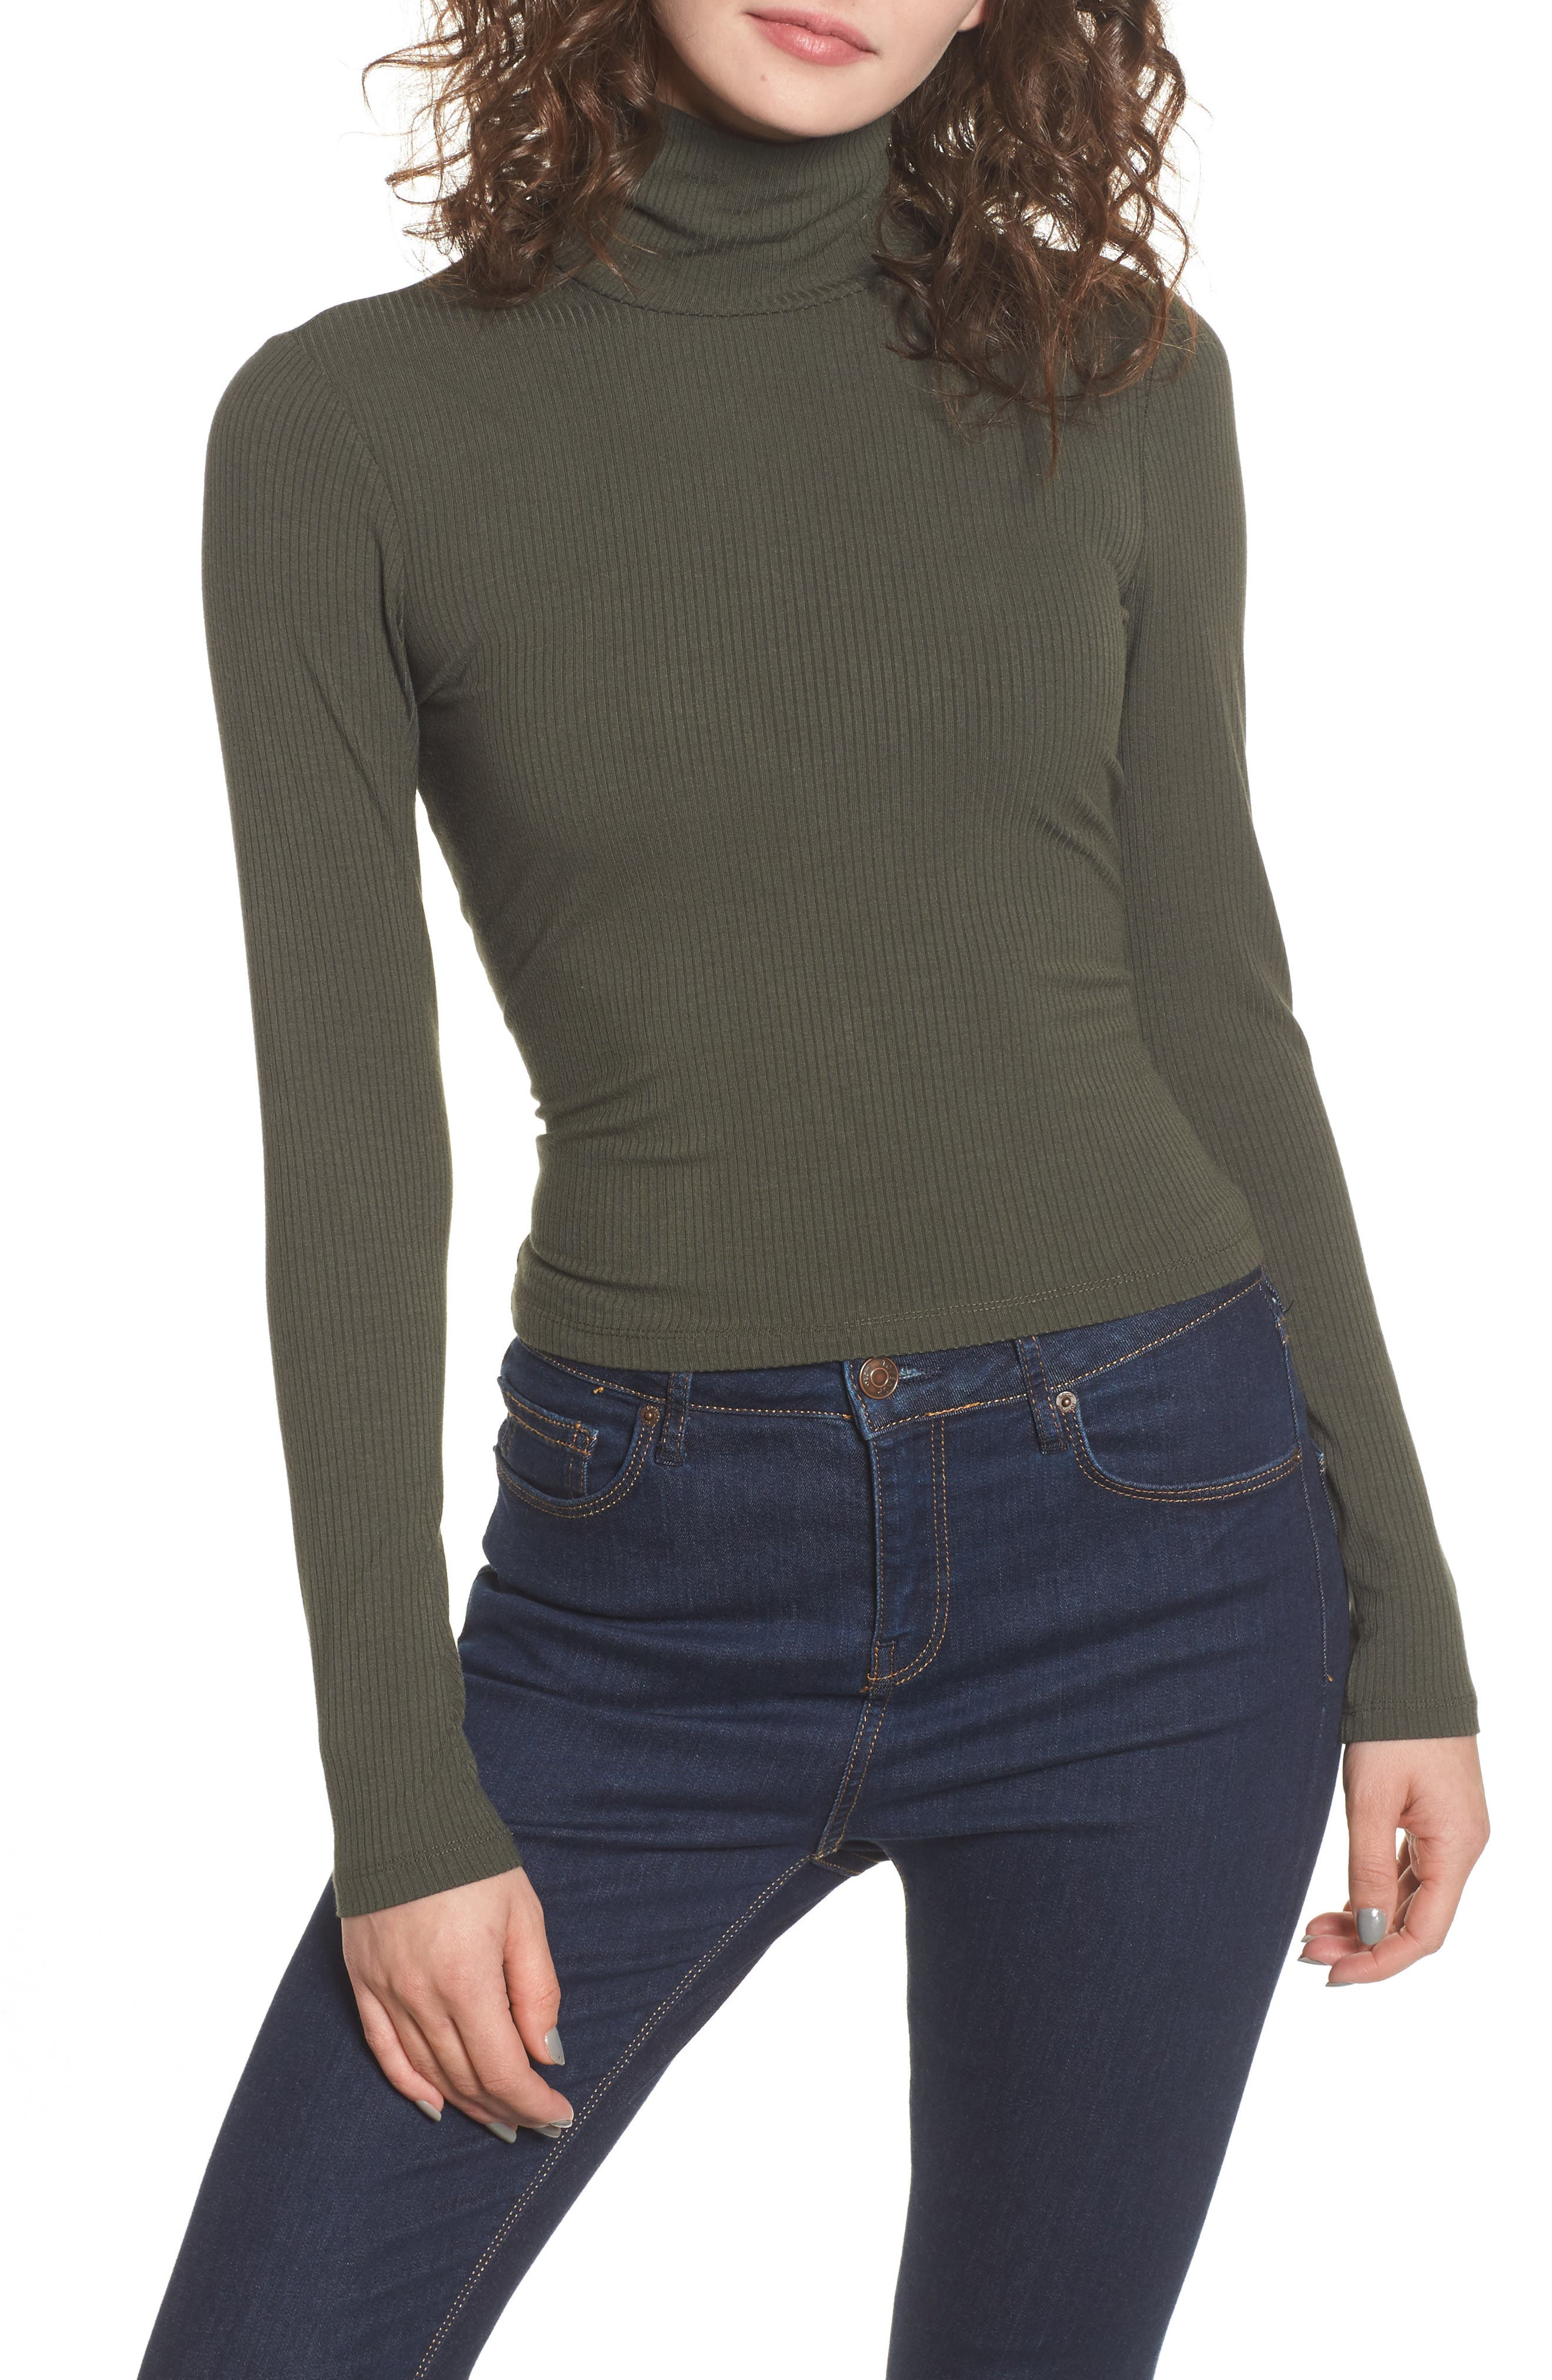 Mira Lace Up Turtleneck,                         Main,                         color, Olive